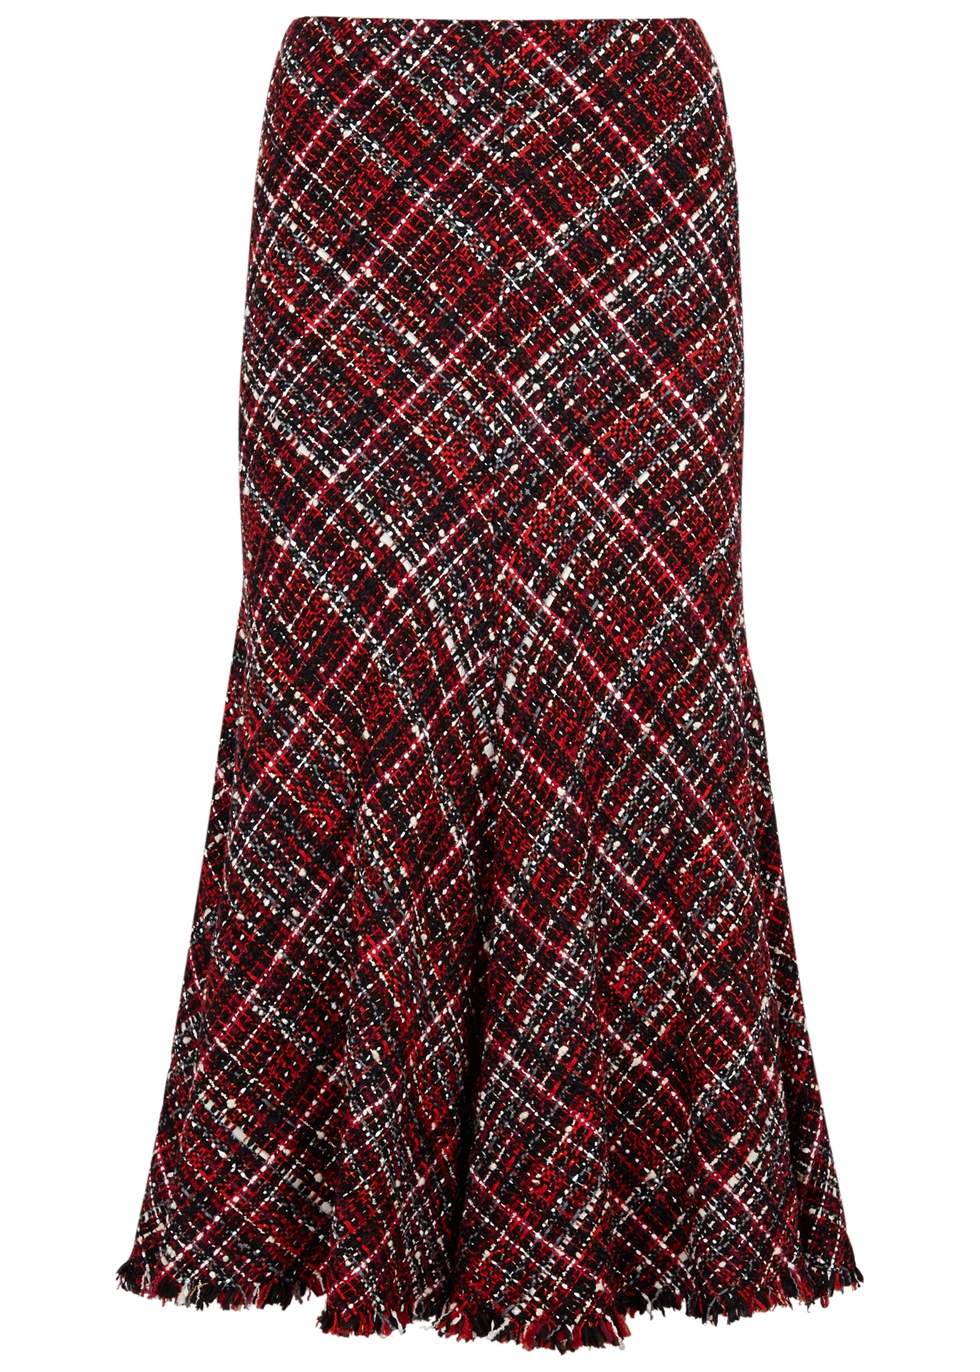 High-Waisted Bouclé Tweed Midi Skirt, Black